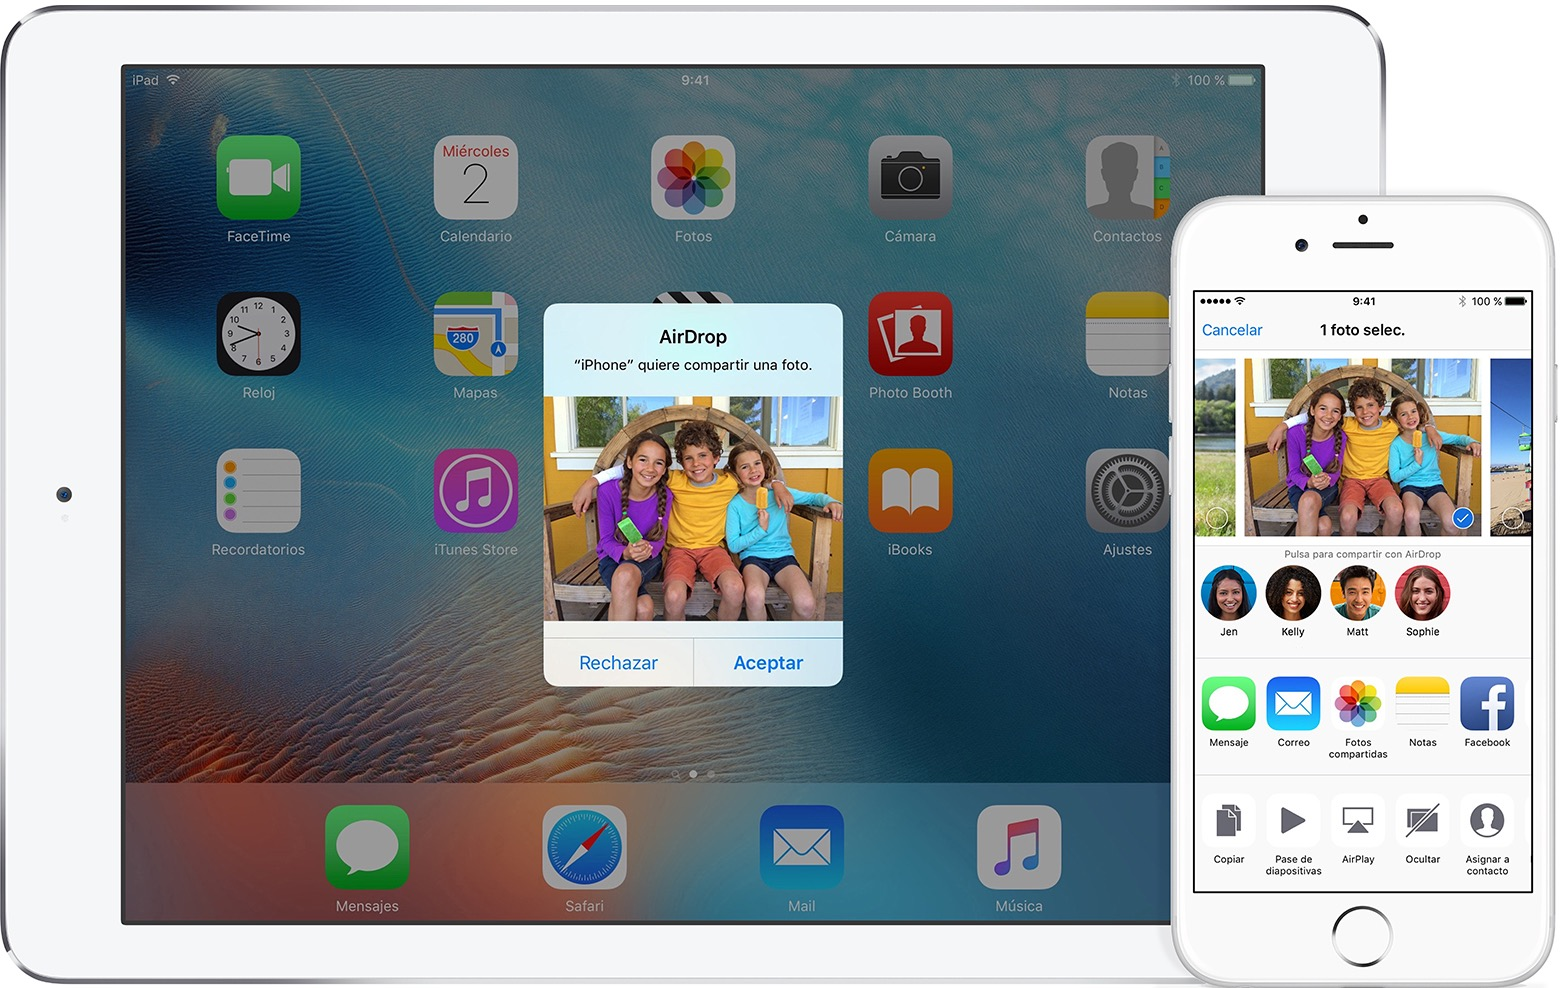 ipad-iphone6-ios9-airdrop-hero